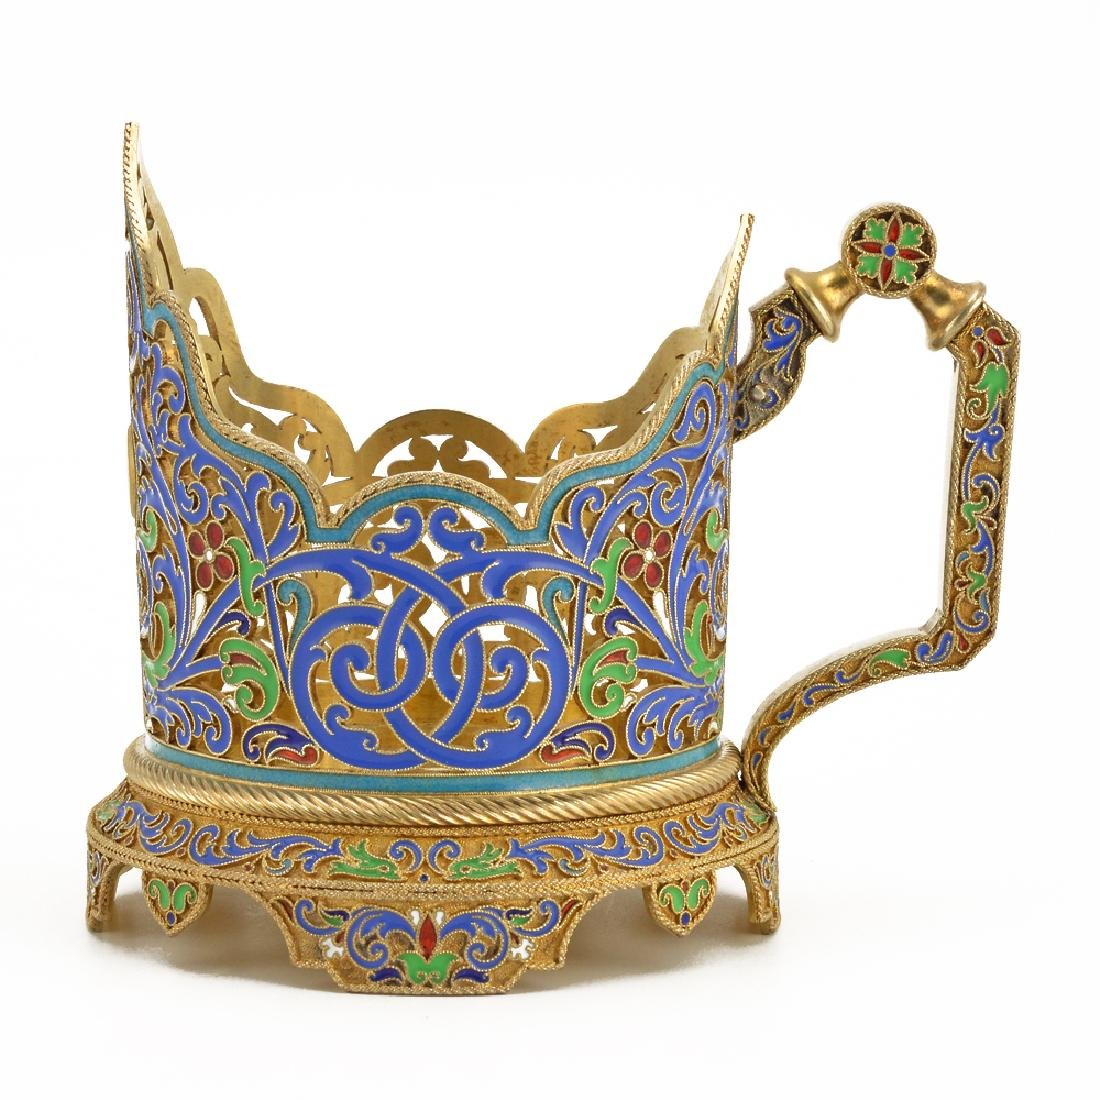 Russian silver and enamel tea glass holder